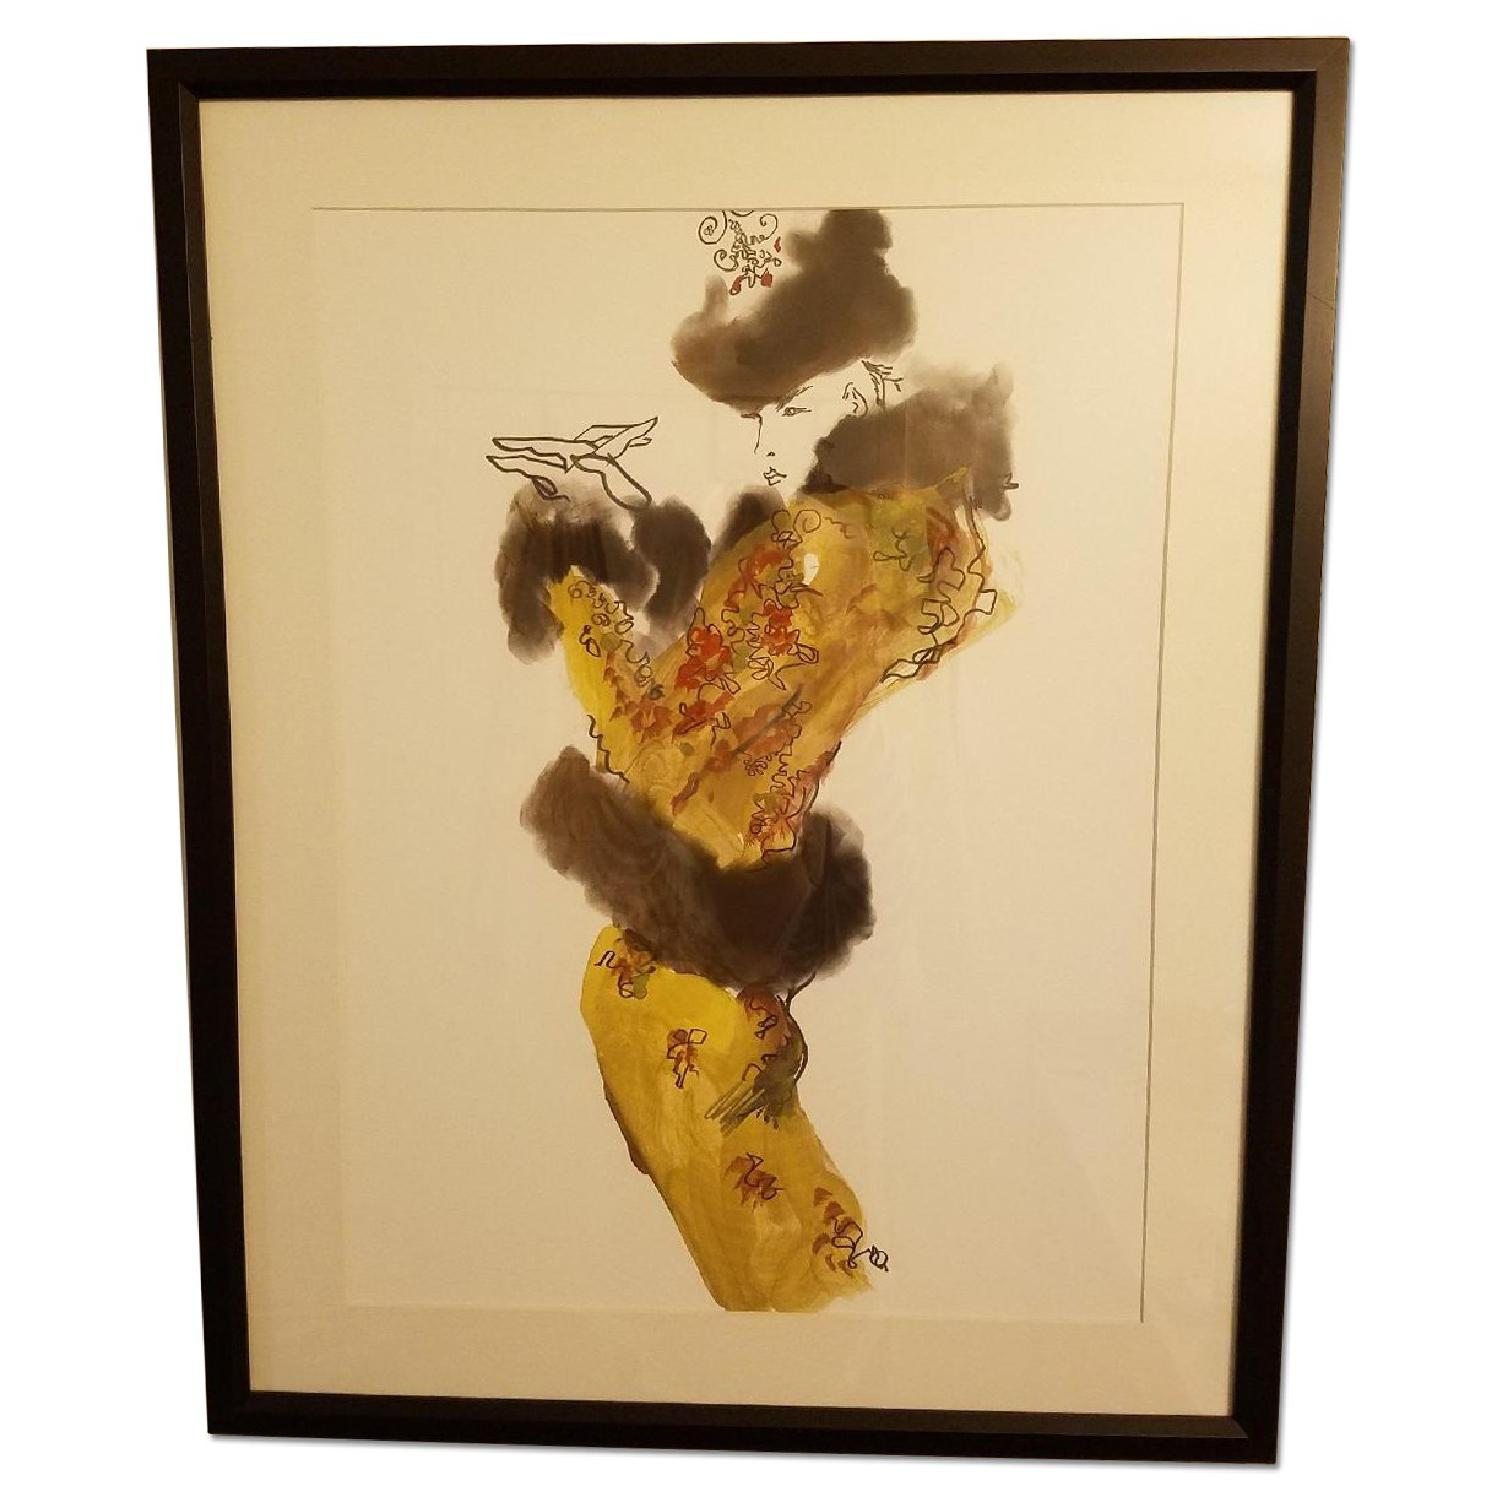 1984 Giclee Framed Print - Chanel Haute Couture by Tony Vira